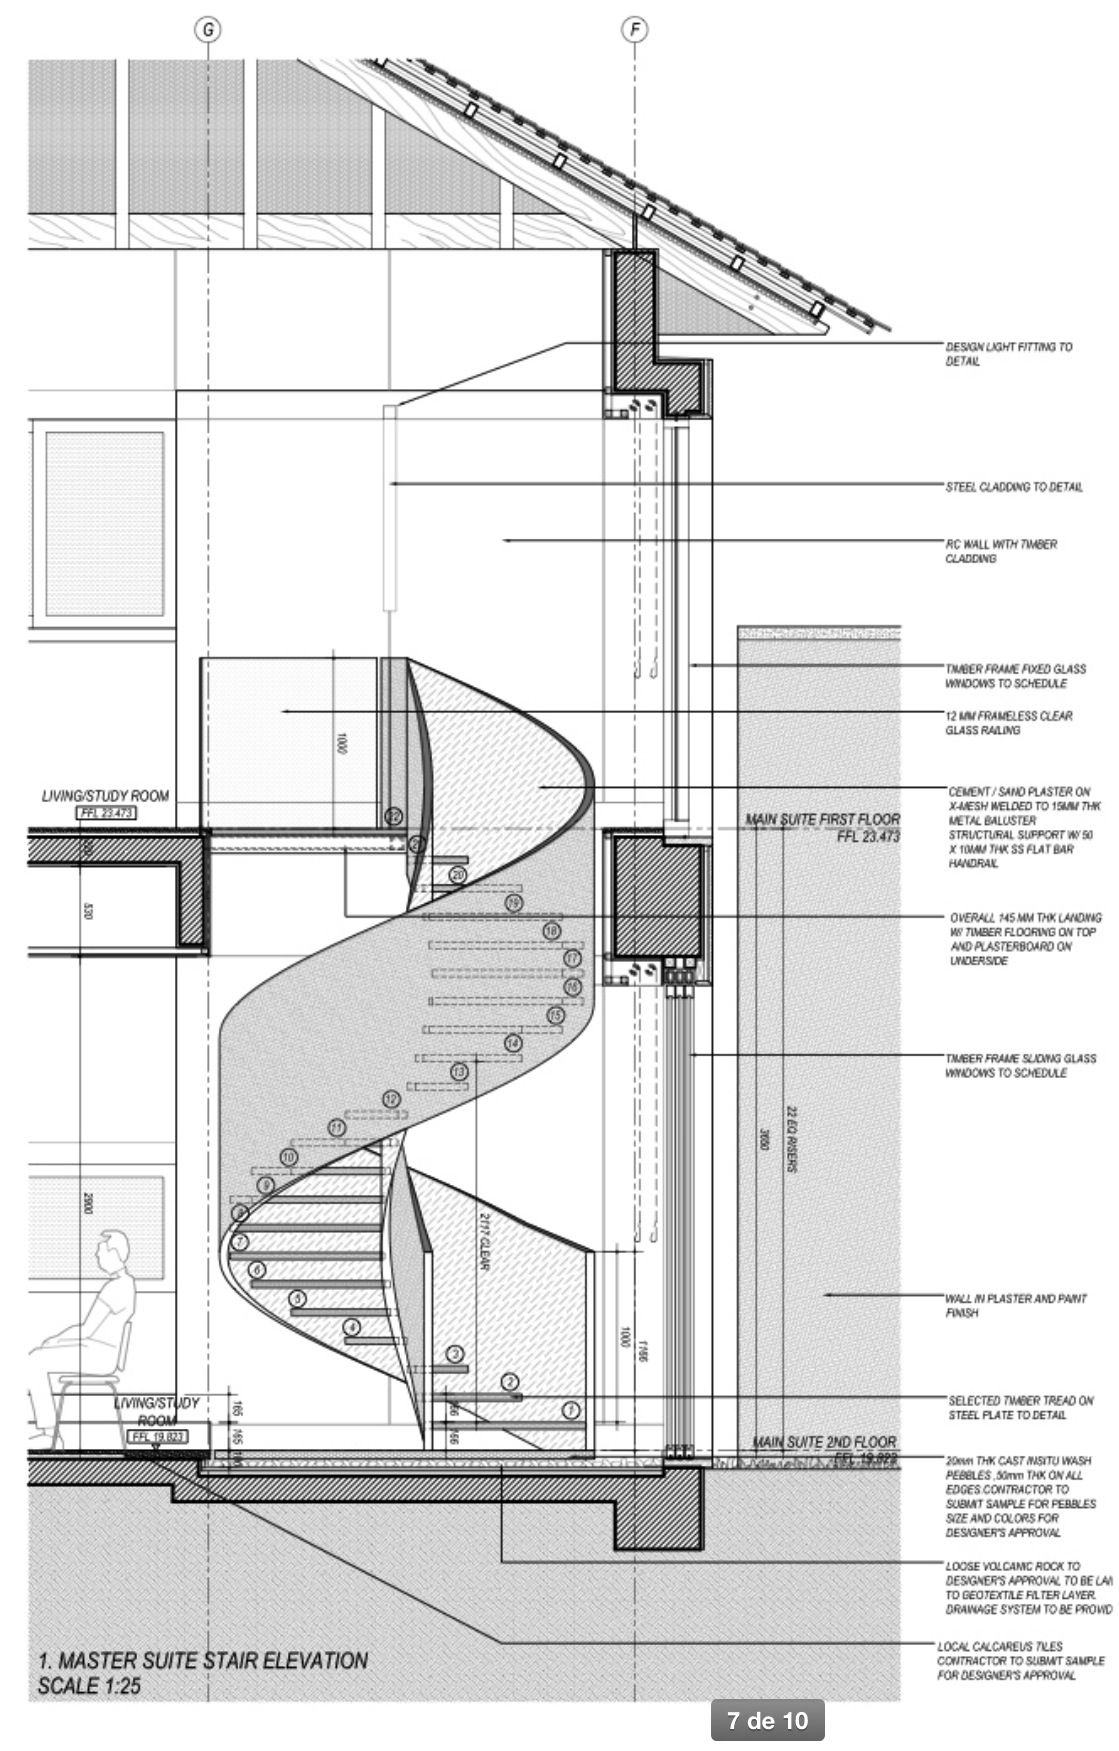 stairs spiral stair bedmar shi drawn by me construction detailing pinterest spiral. Black Bedroom Furniture Sets. Home Design Ideas